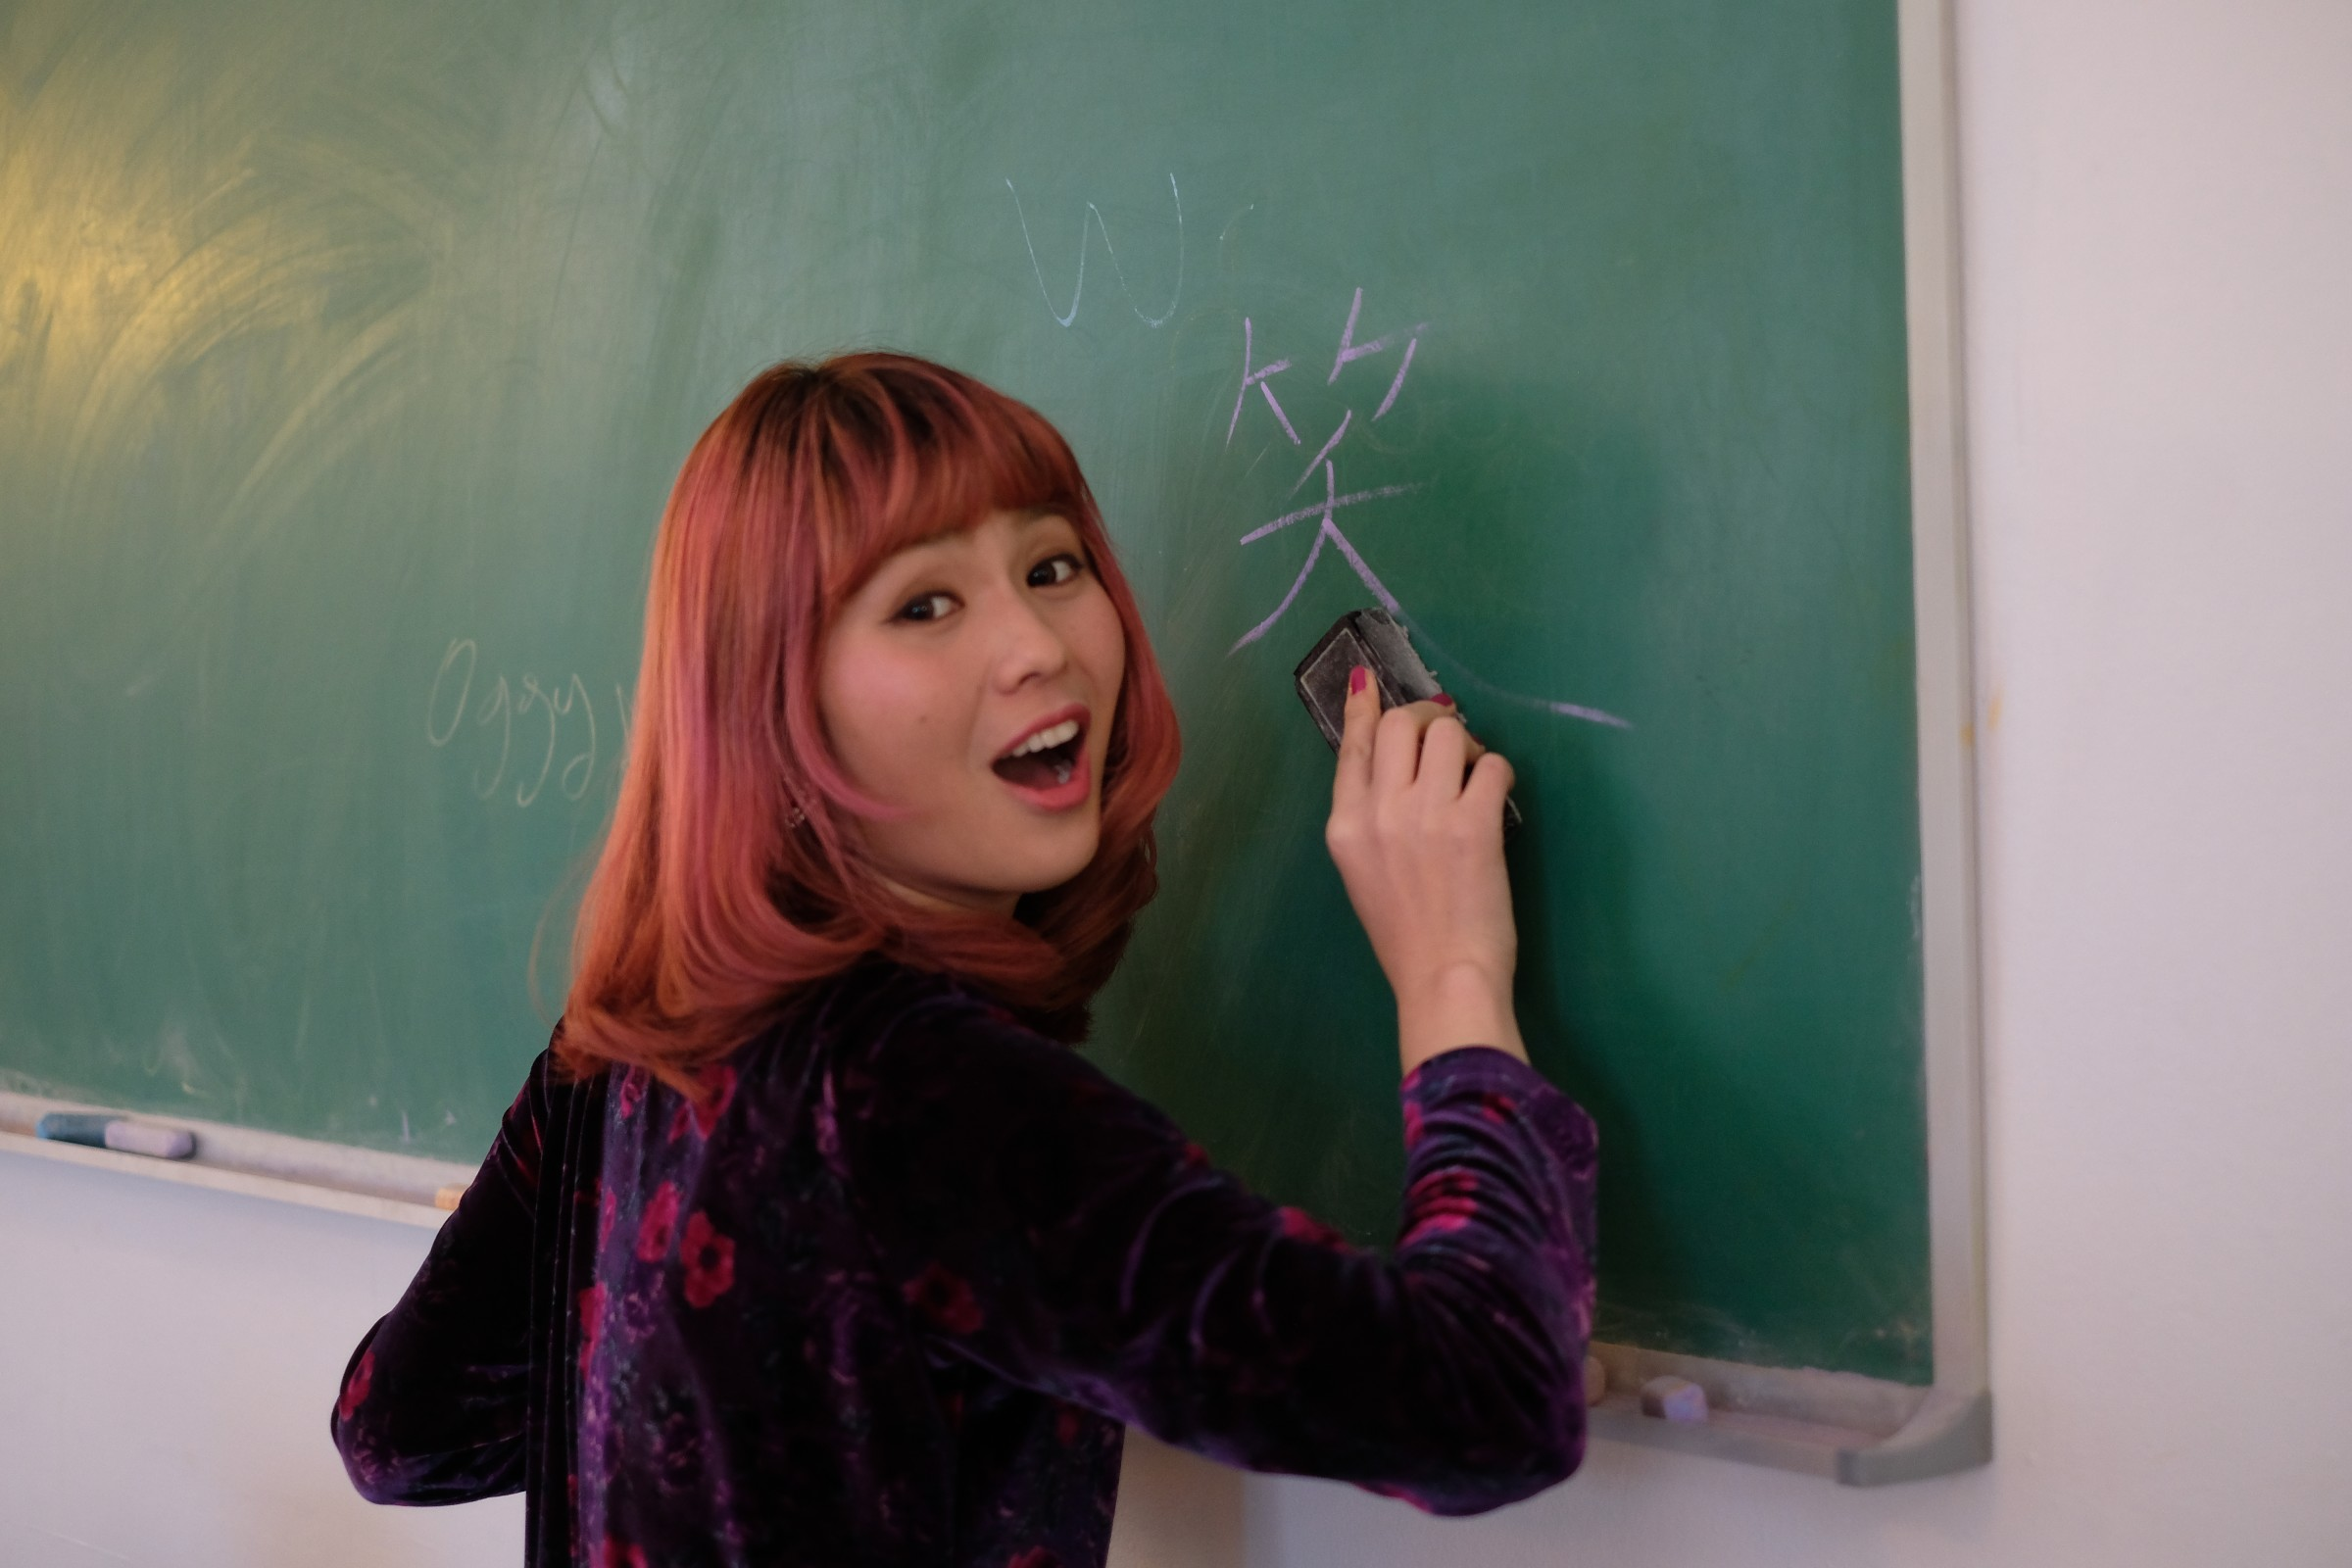 Asian girl writing on chalkboard